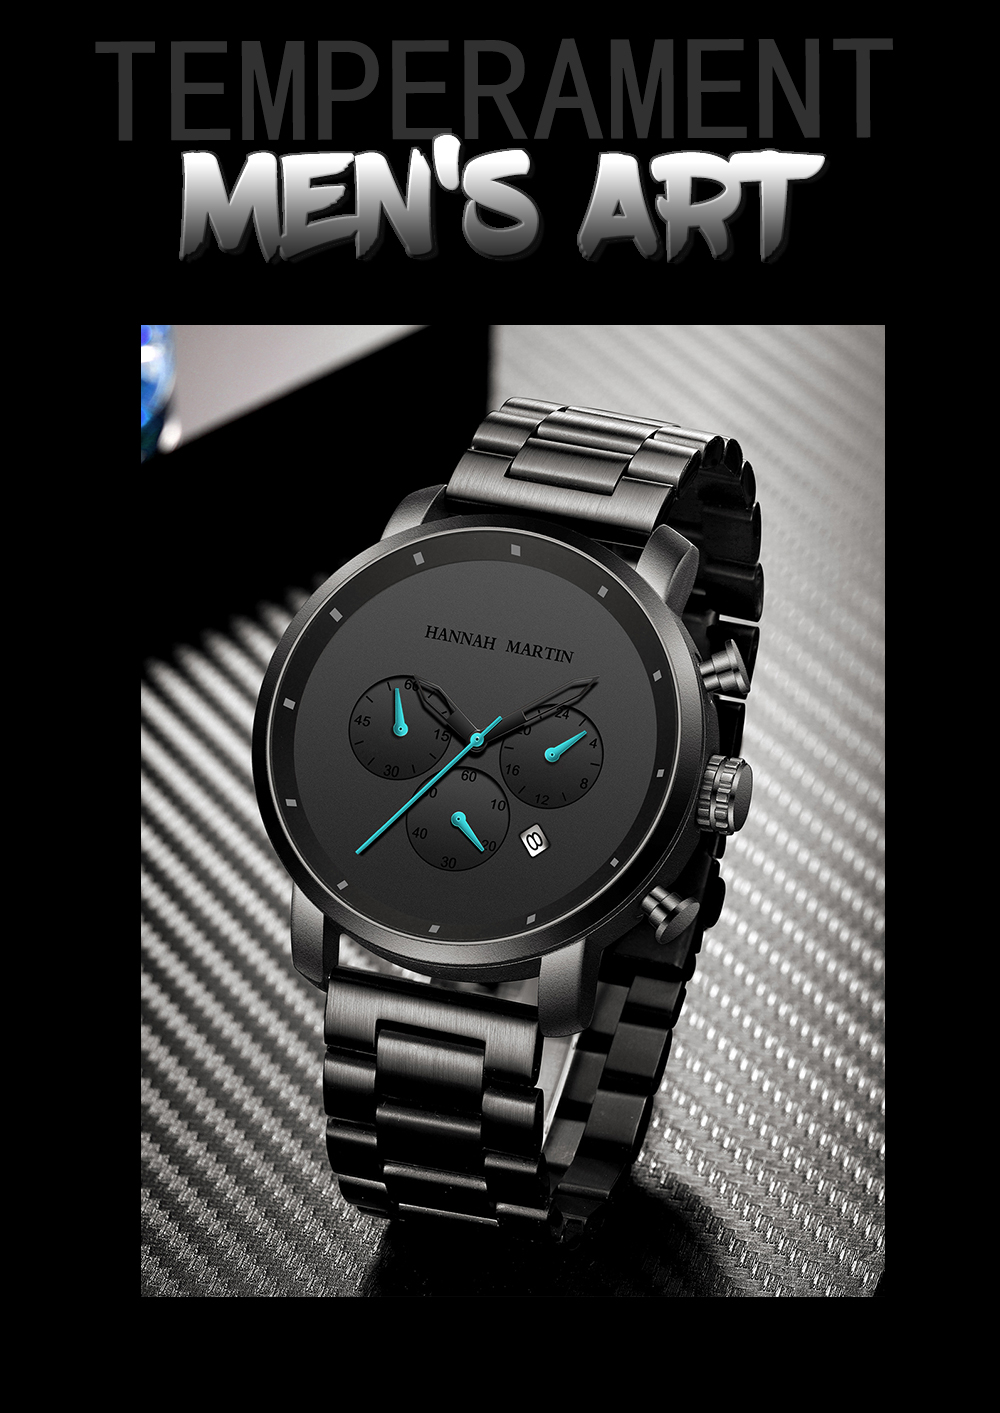 H3b0080d0776544c9aedf9a322abb8b0aB DropShipping Big Dial 45mm Full Black Stainless Steel Multi-function Calendar Men's Top Brand Luxury Watches Relogio Masculino